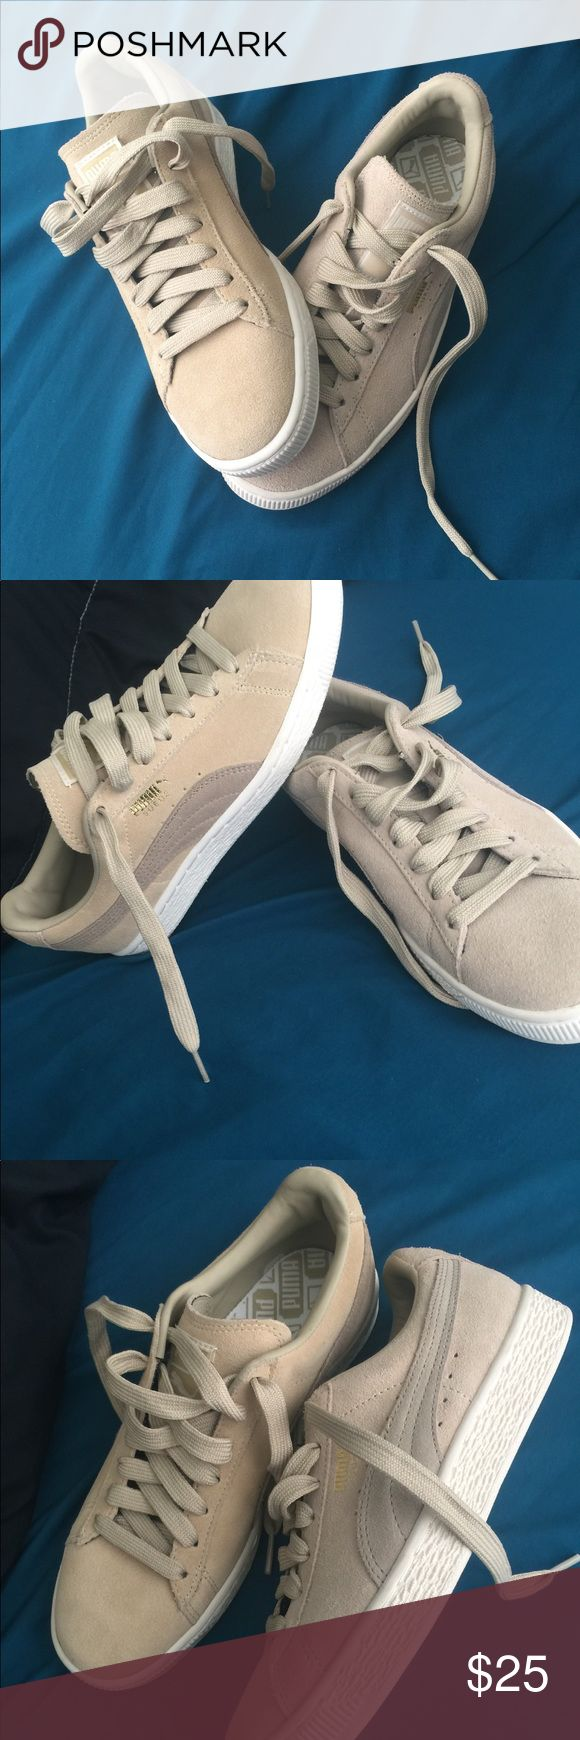 Brand New Pumas🎀 •brand new never worn •no box without tags  •discount price due to factory defect  •shoes are authentic  •are as pictured slight defect Puma Shoes Sneakers